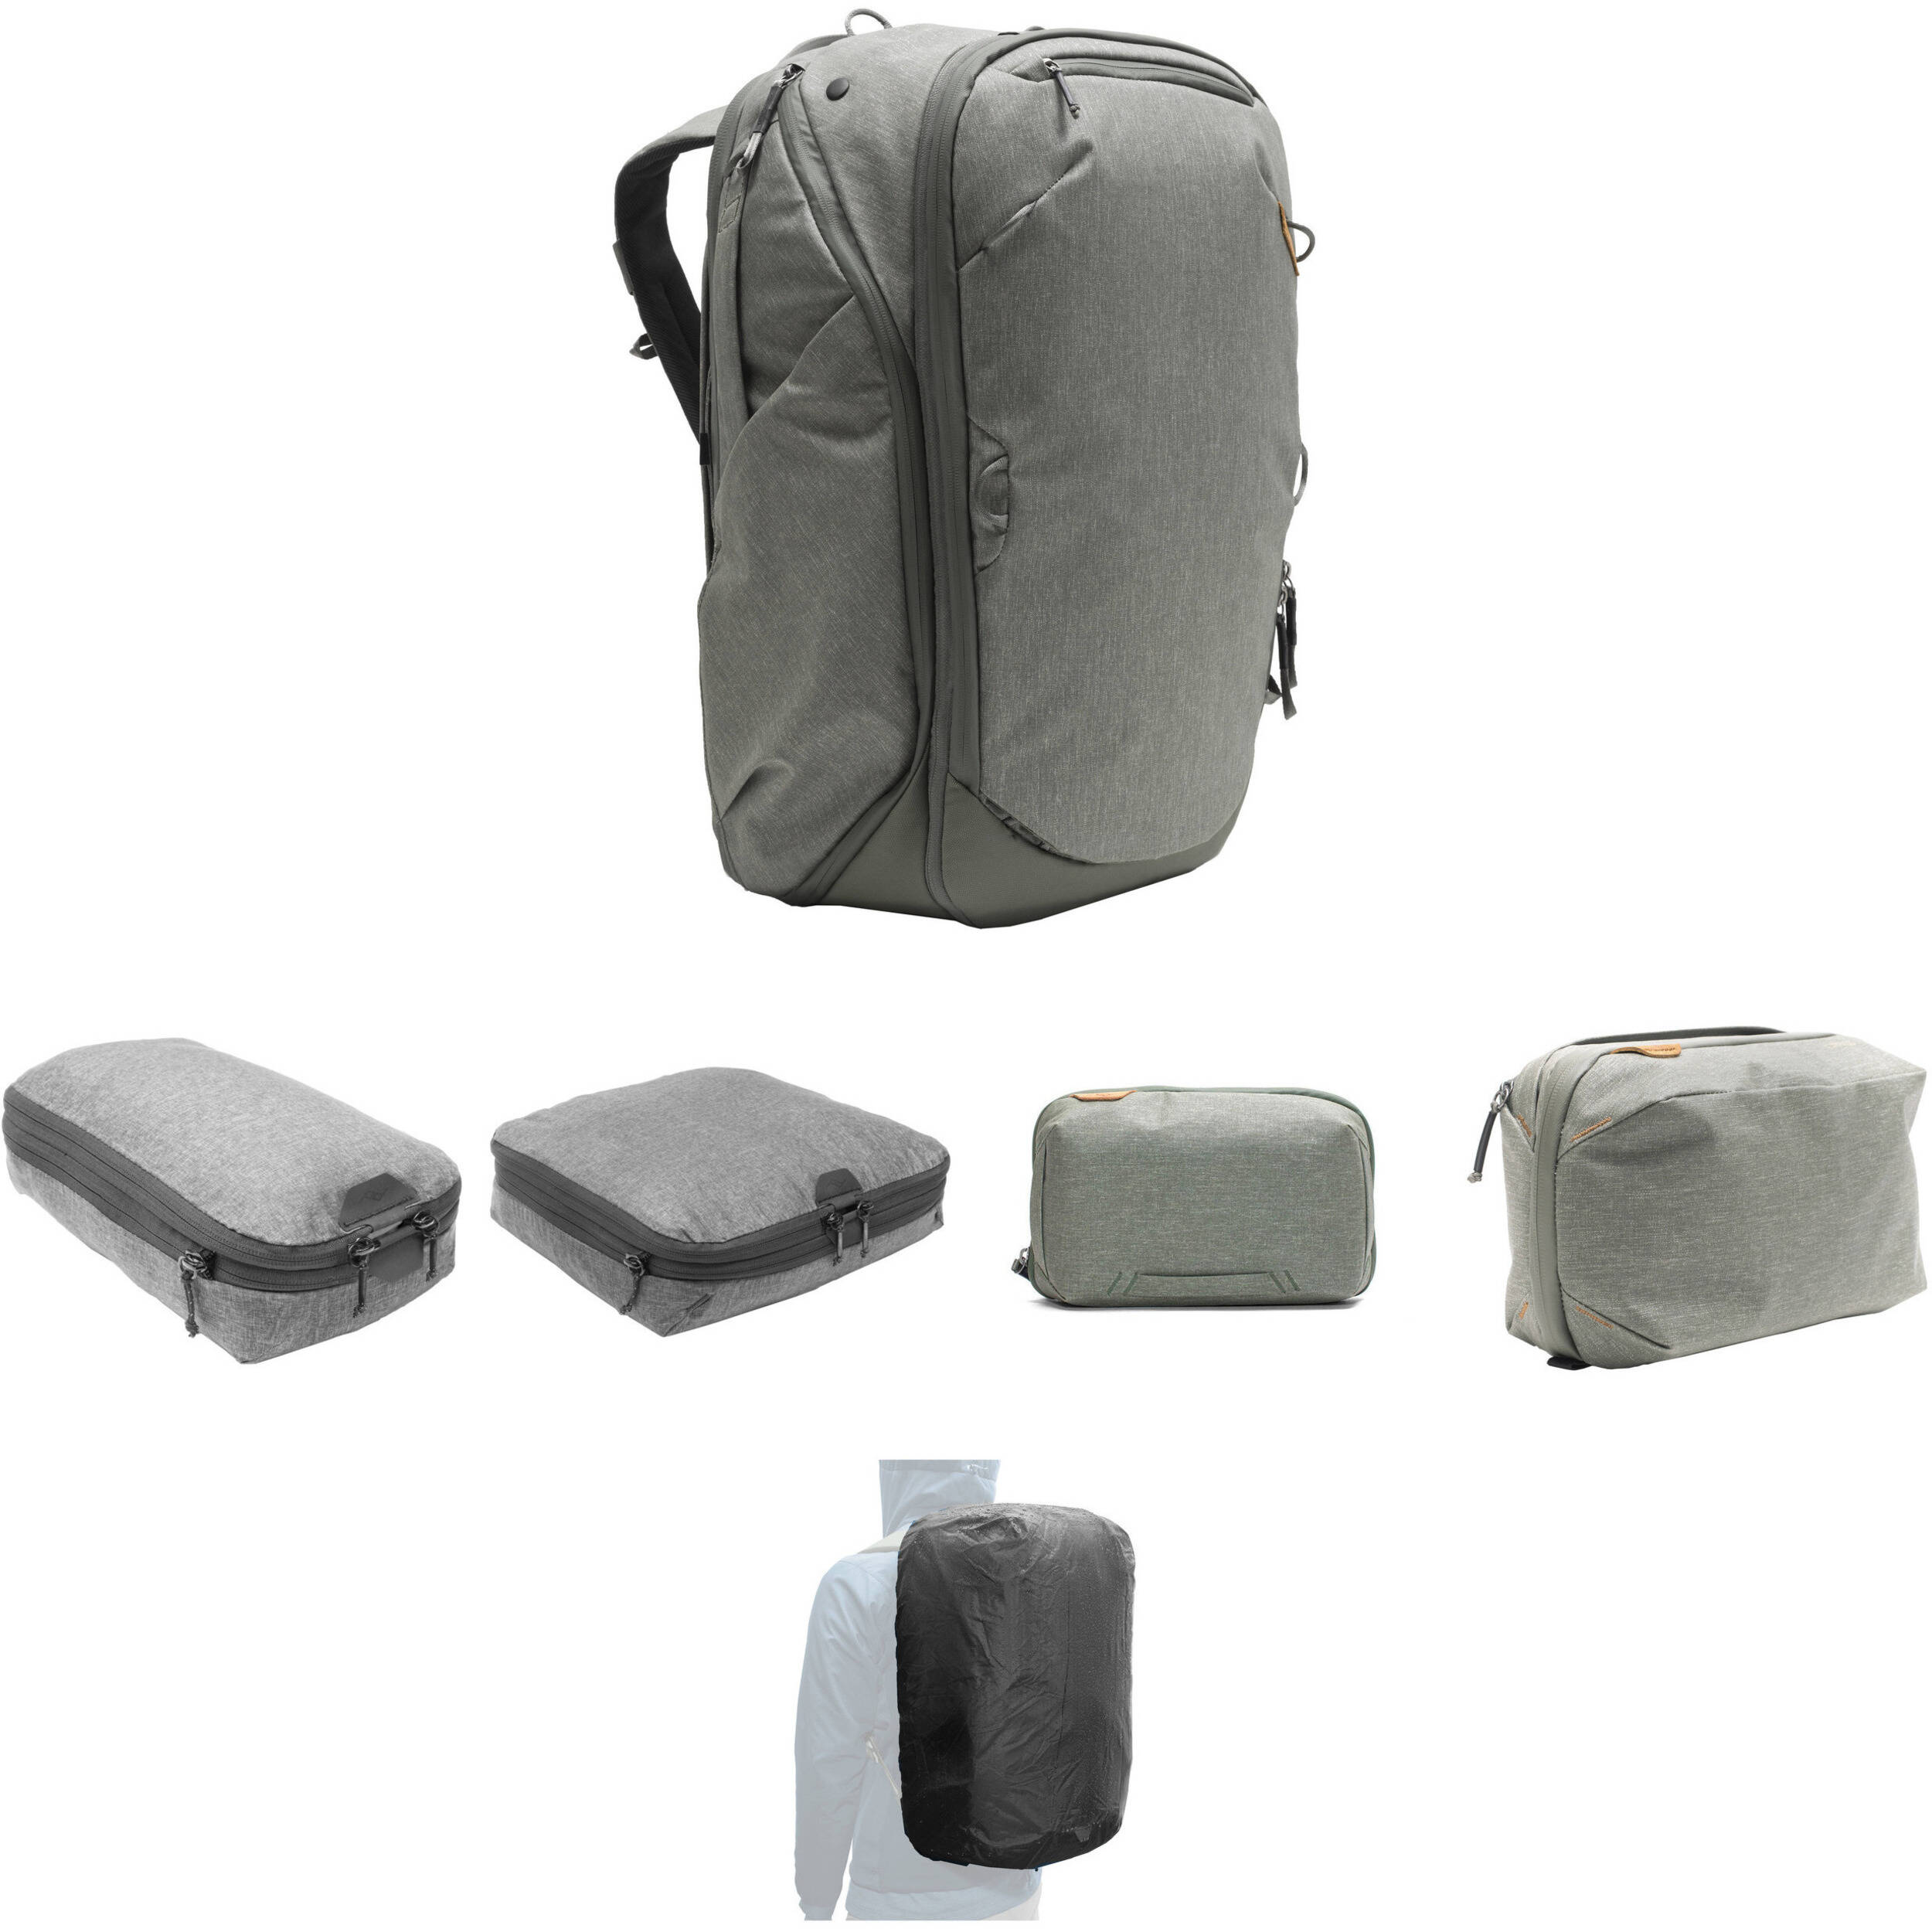 c4a882ca6b19 Travel Backpack, Tech Pouch, Wash Pouch, Rain Fly, Small and Medium Packing  Cube (Sage)